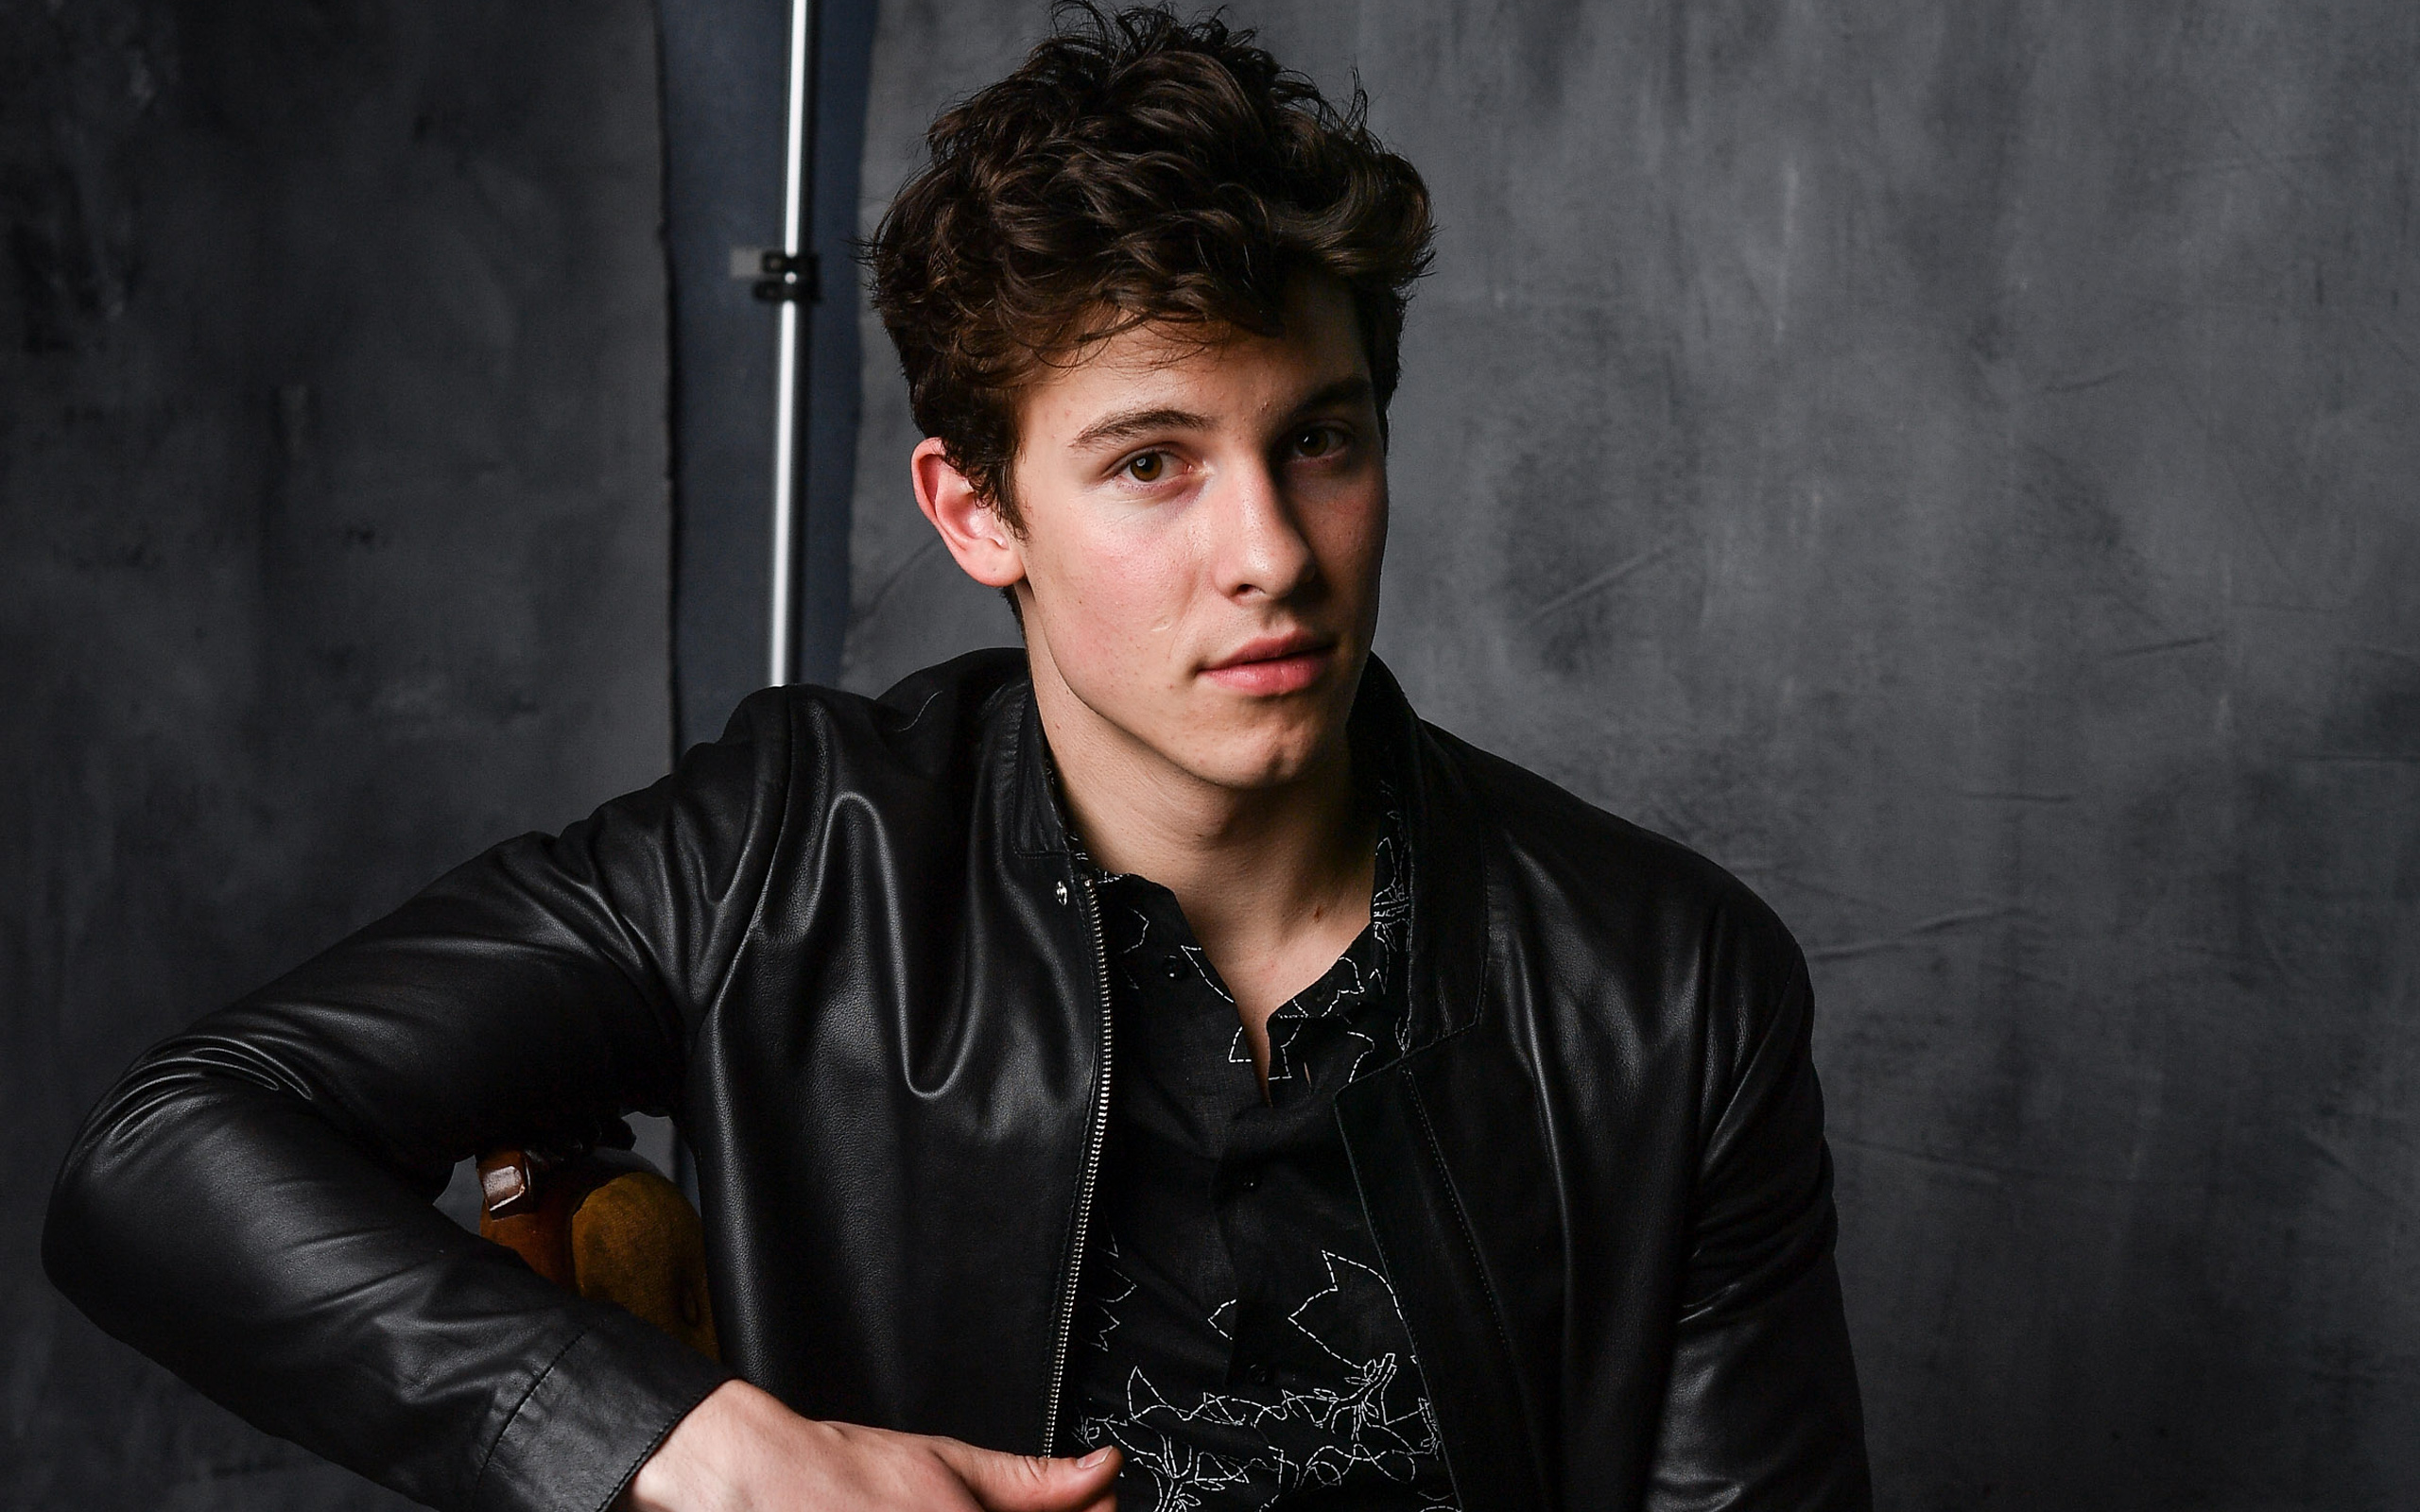 Beautiful Wallpaper With Quotes For Facebook Shawn Mendes Wallpaper Hd 2018 Wallpaper Hd